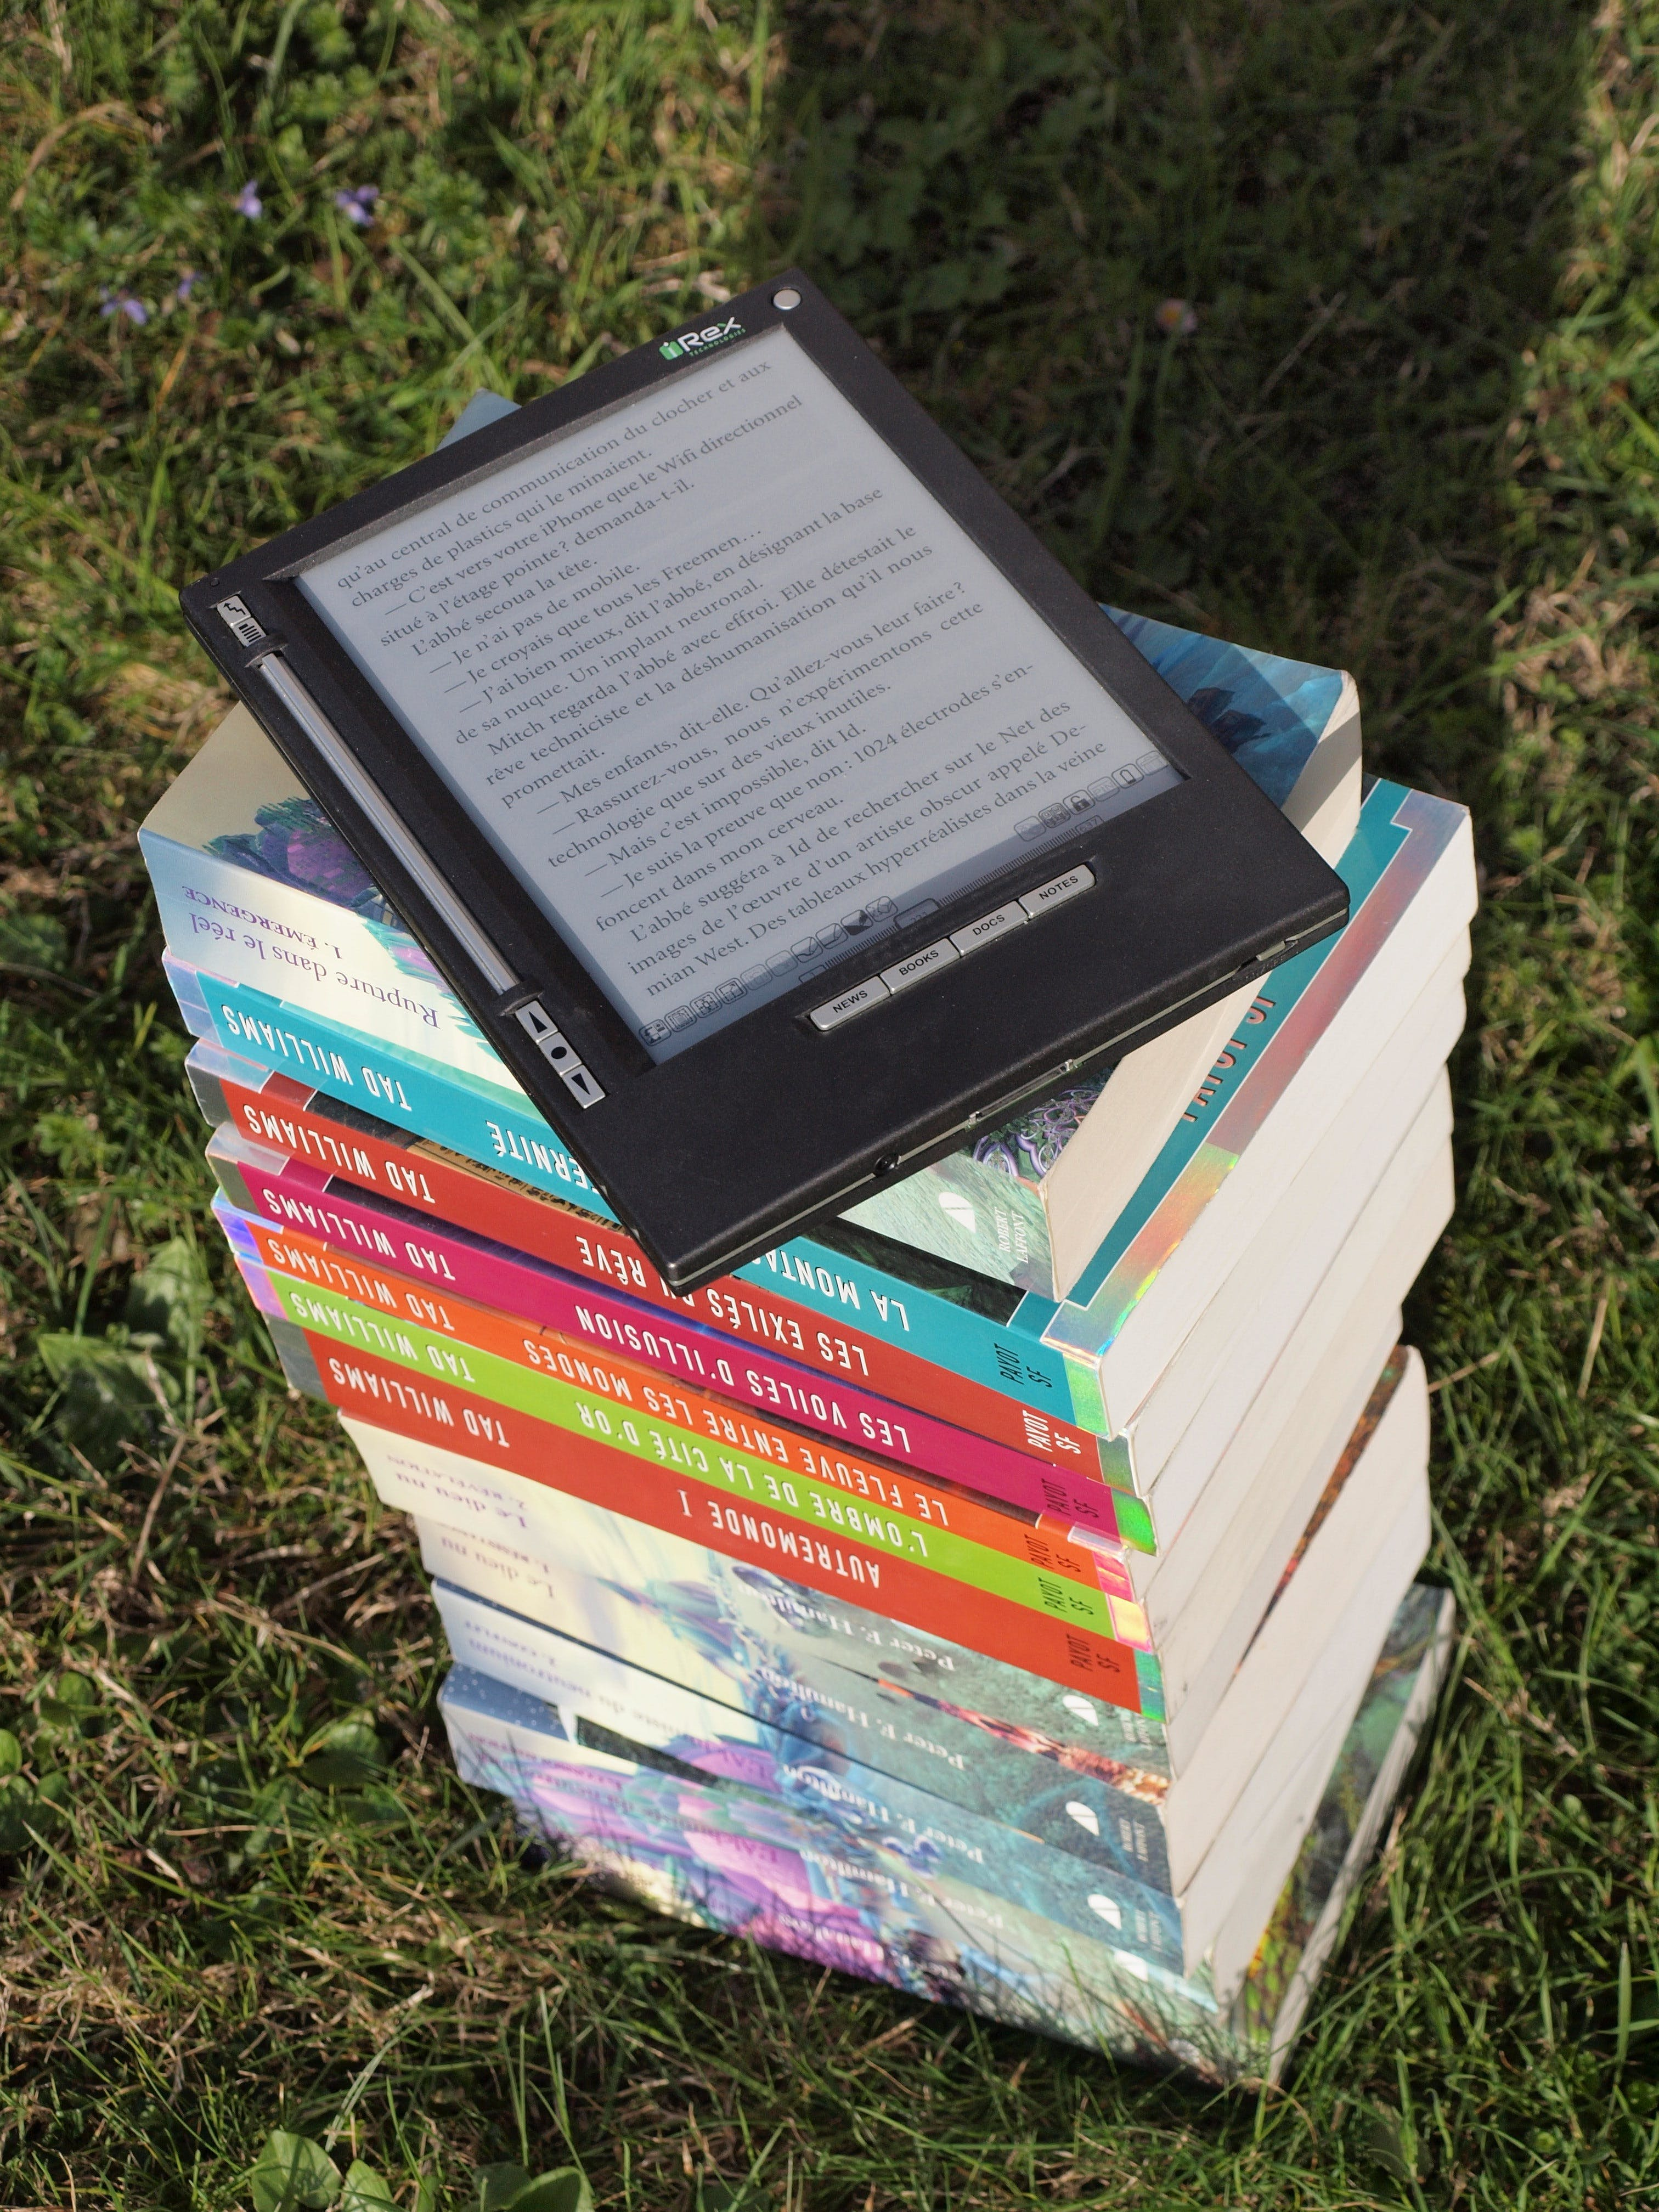 Blue Pink Gray and Green Labeled Hardbound Book Pile on Green Grass during Daytime